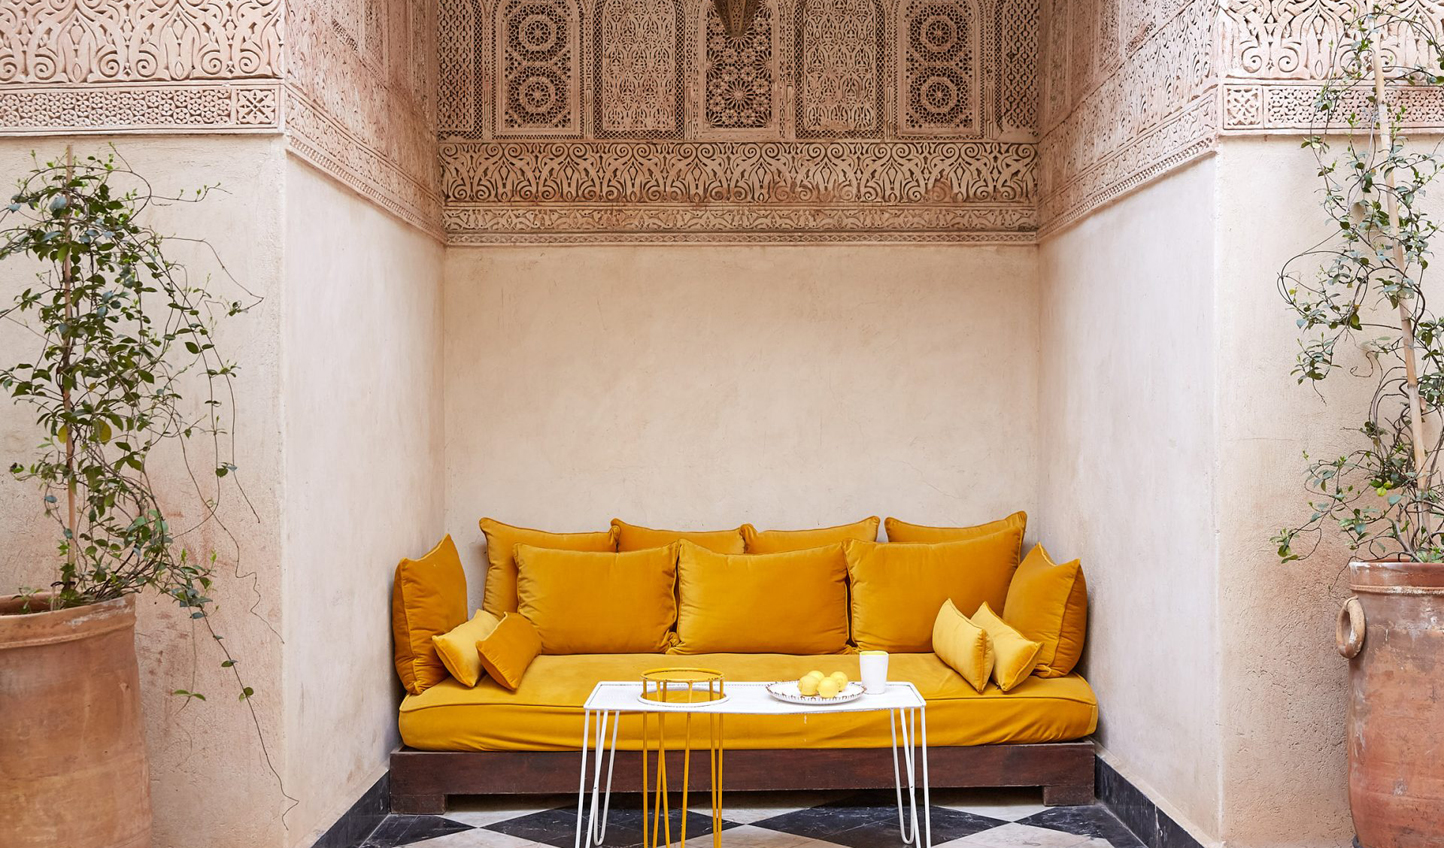 Feel at home in Marrakech